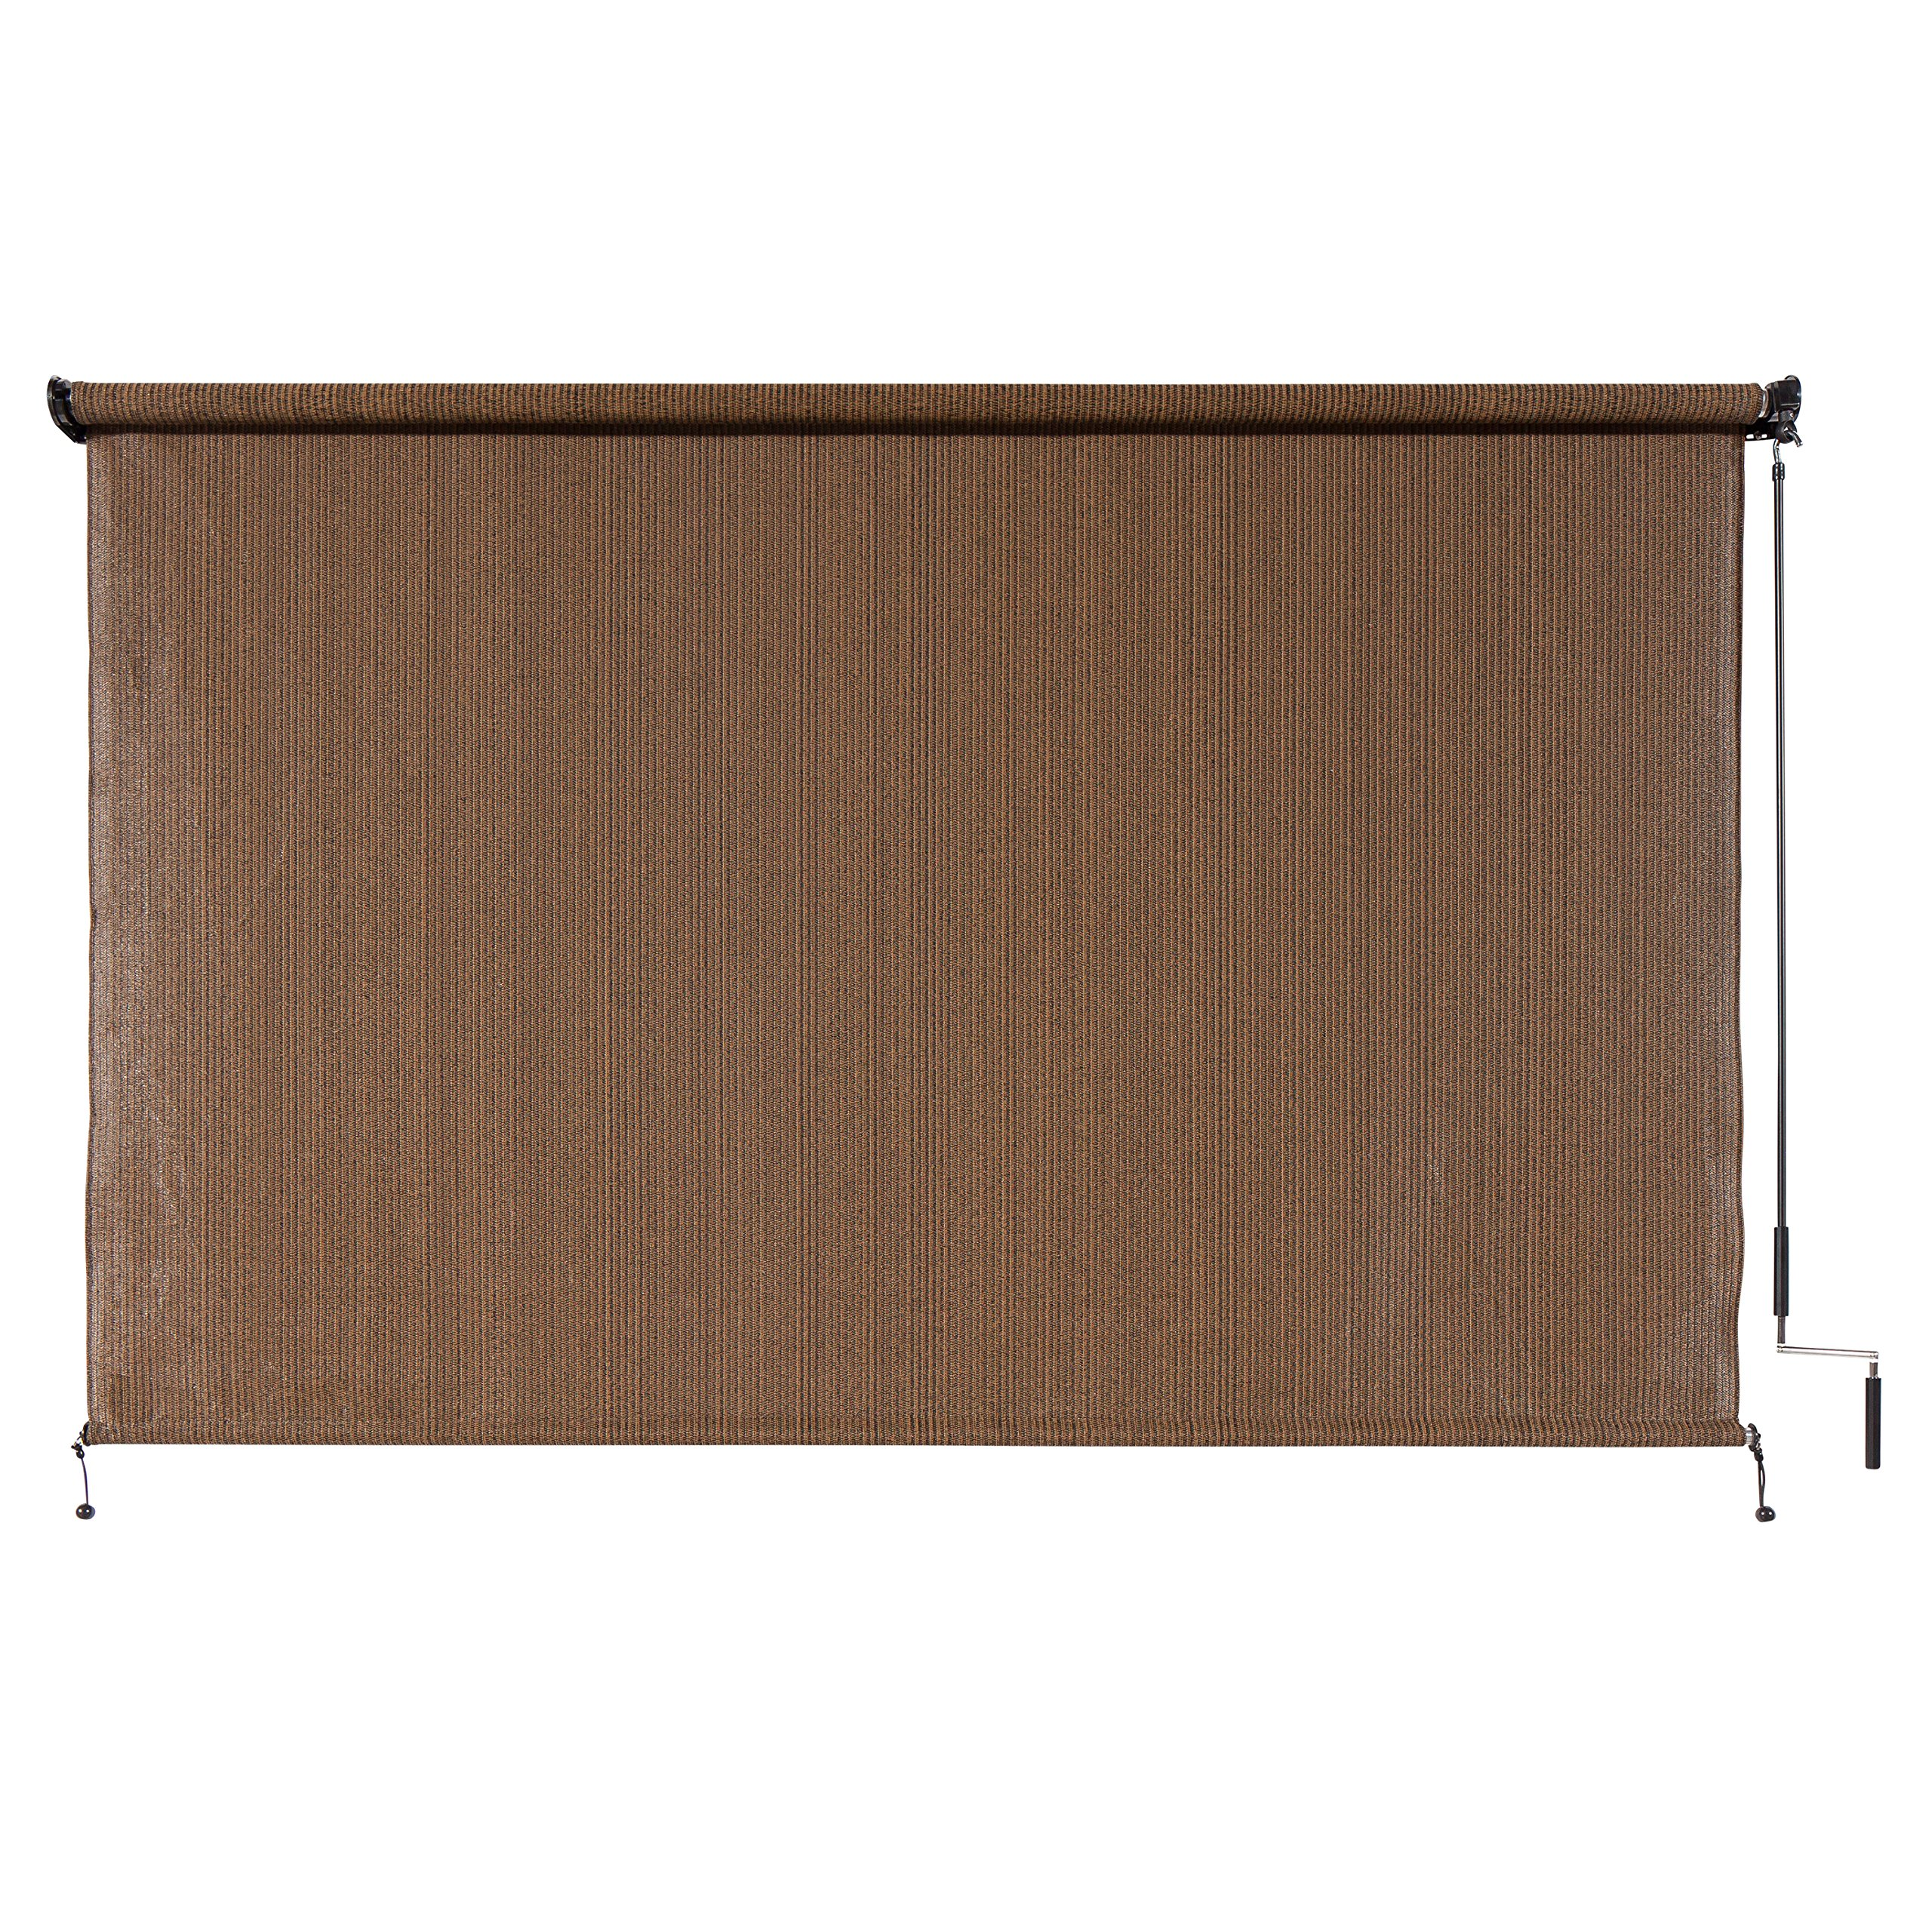 Coolaroo exterior cordless roller shade 8ft by 6ft mocha for Exterior roller shade